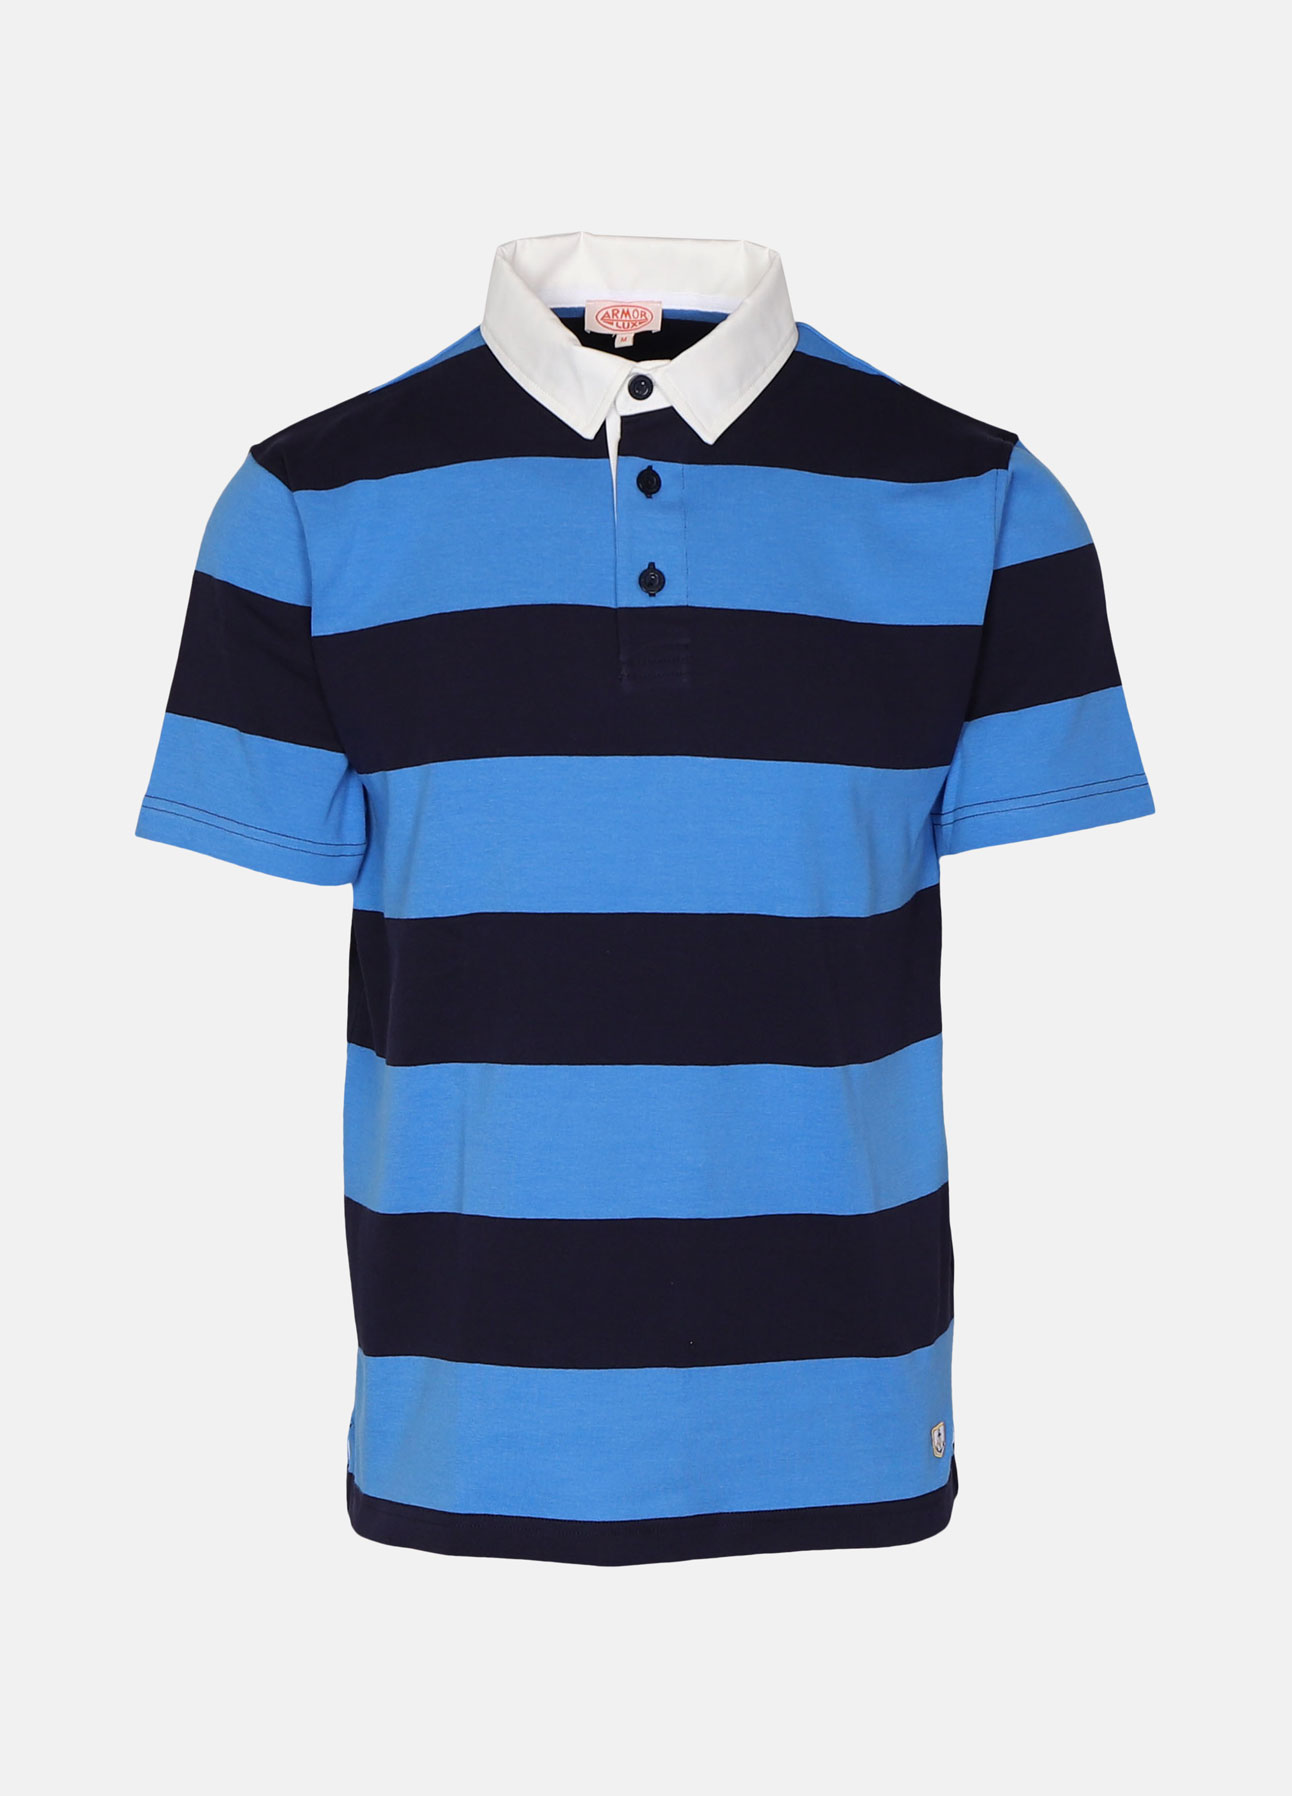 Navy/blå rugby polo shirt fra Armor Lux